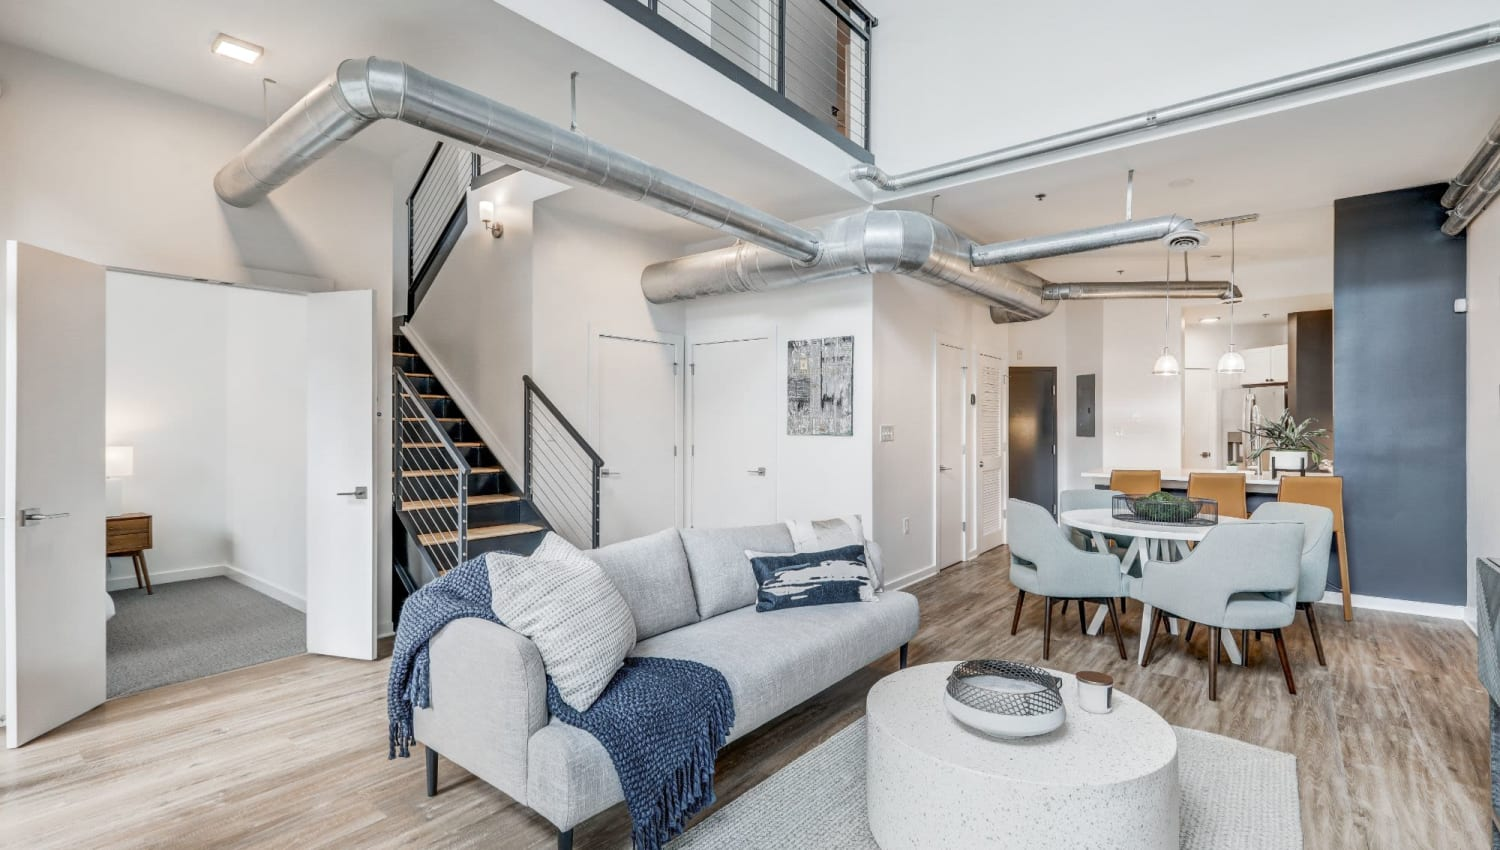 Incredible modern loft decorated ready for move in at 17th Street Lofts in Atlanta, Georgia